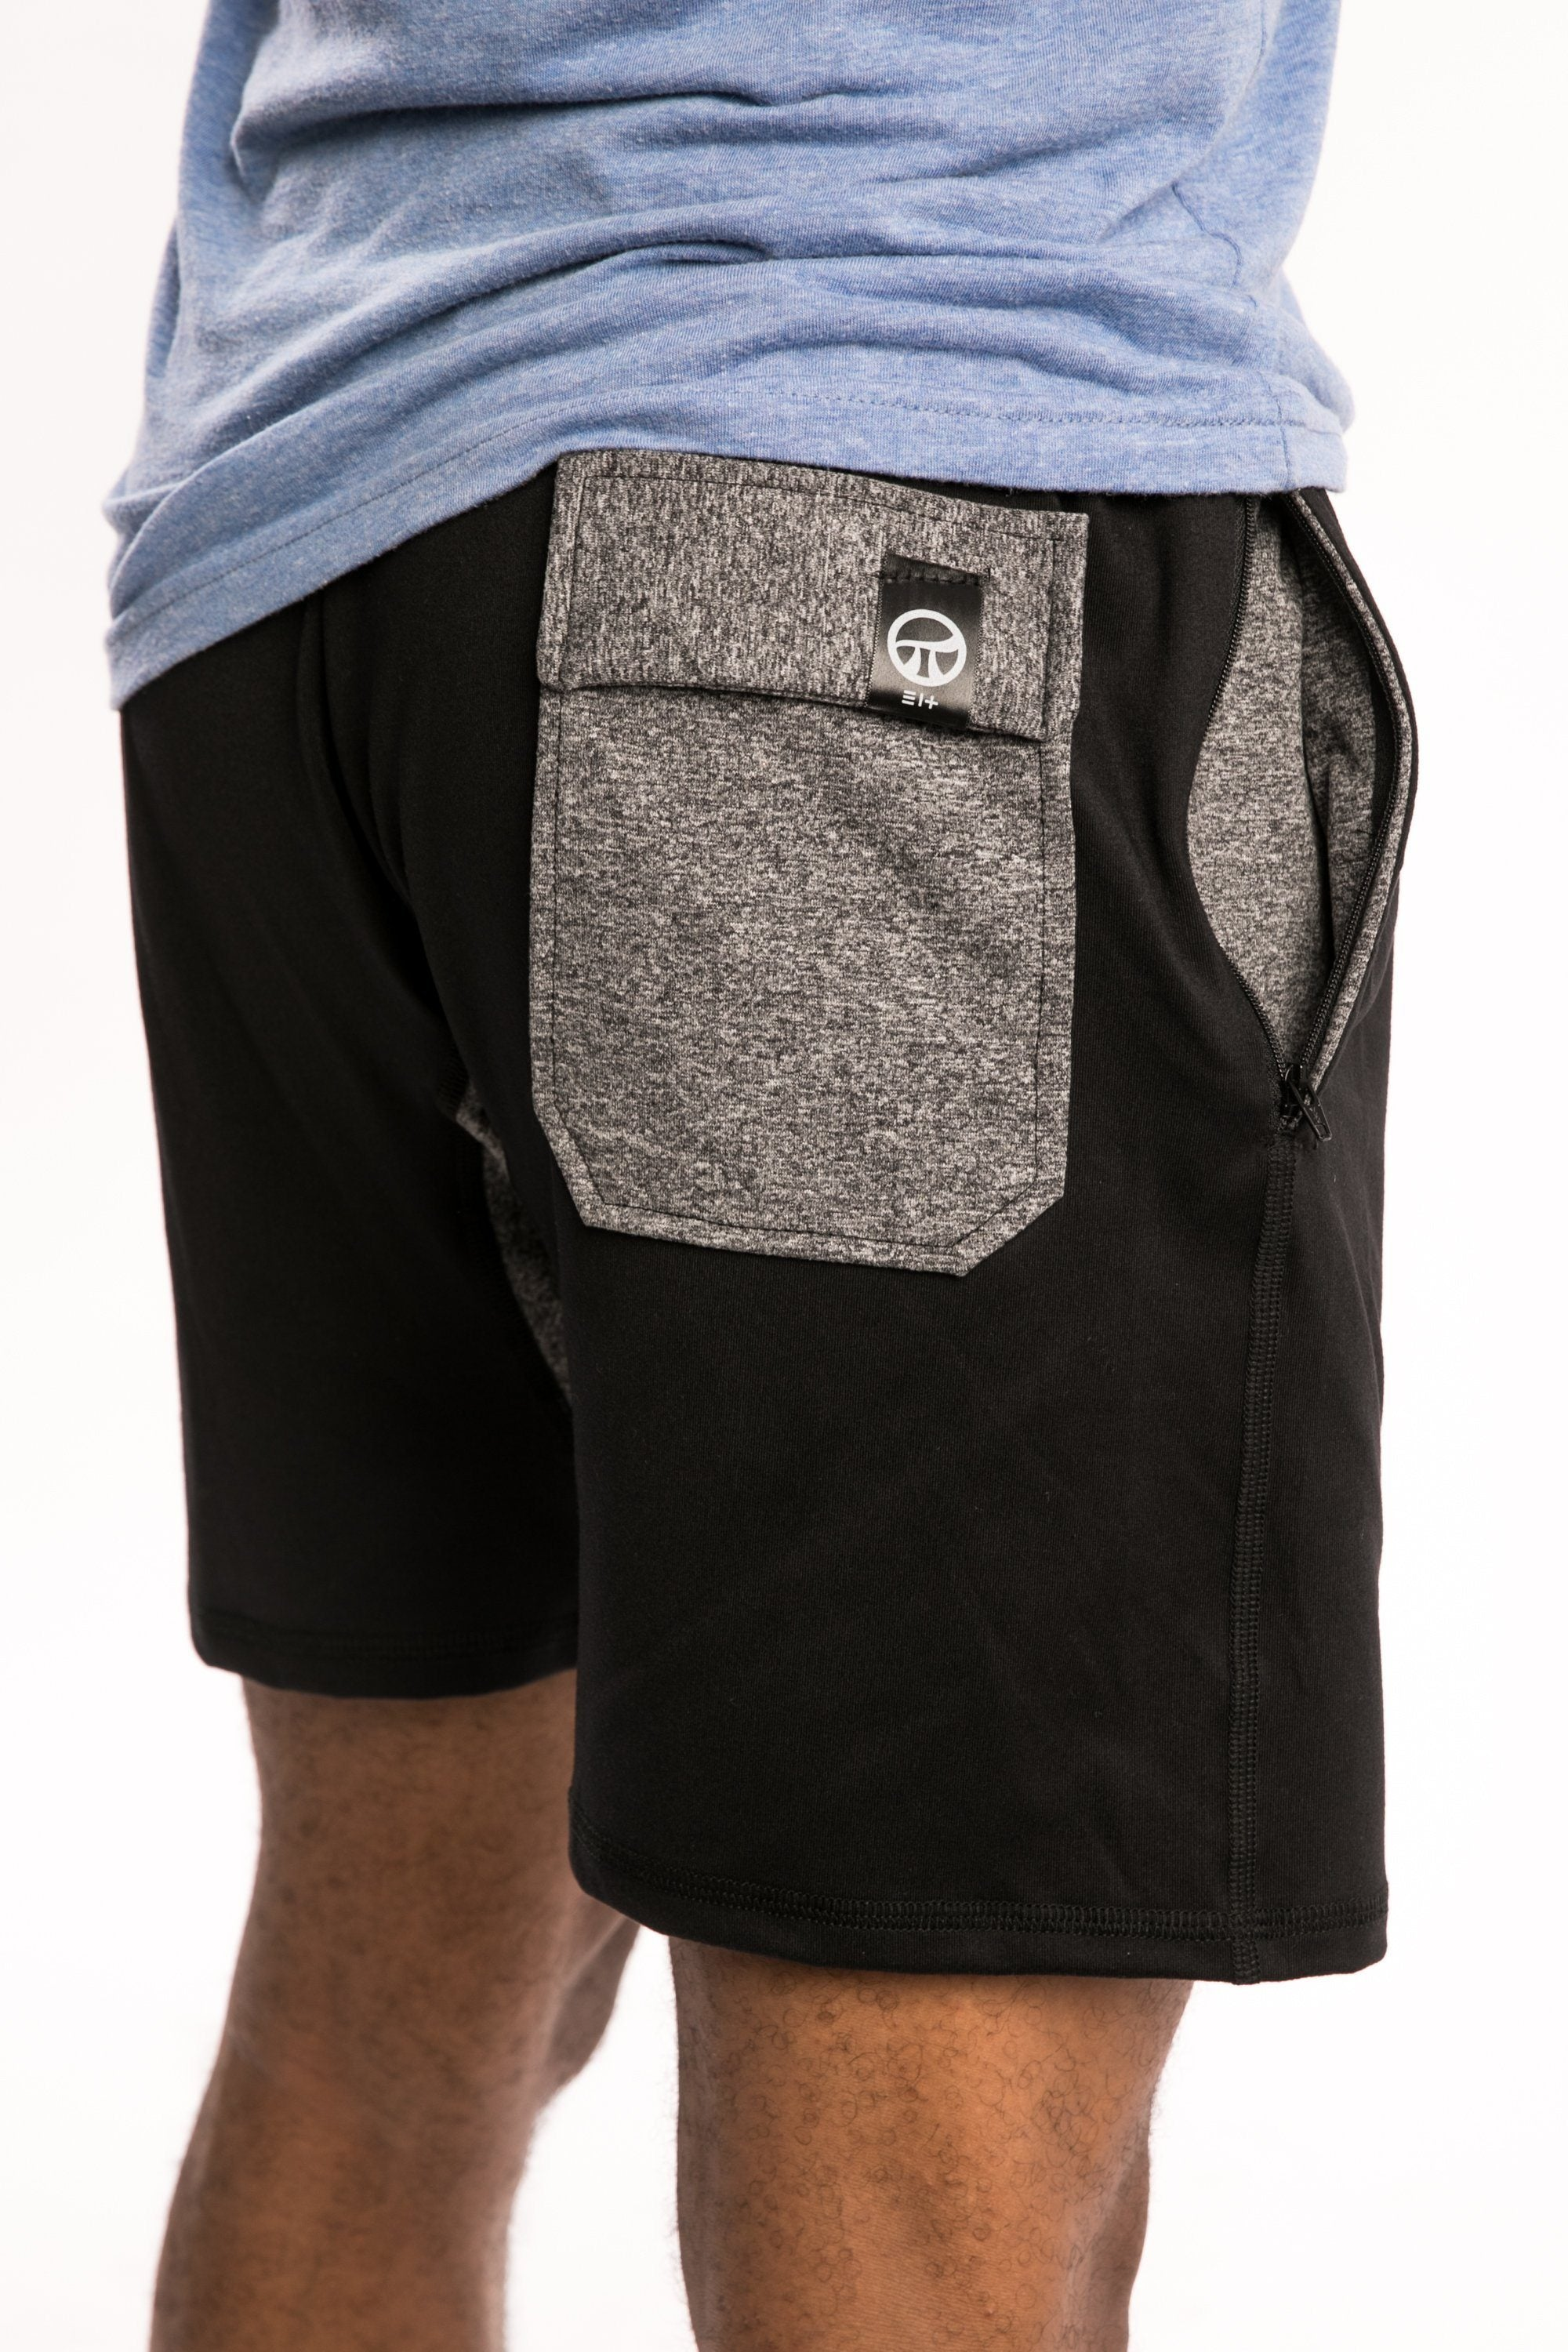 BLACK/GRAY Short-SHORTS-Pi Movement-Pi Movement